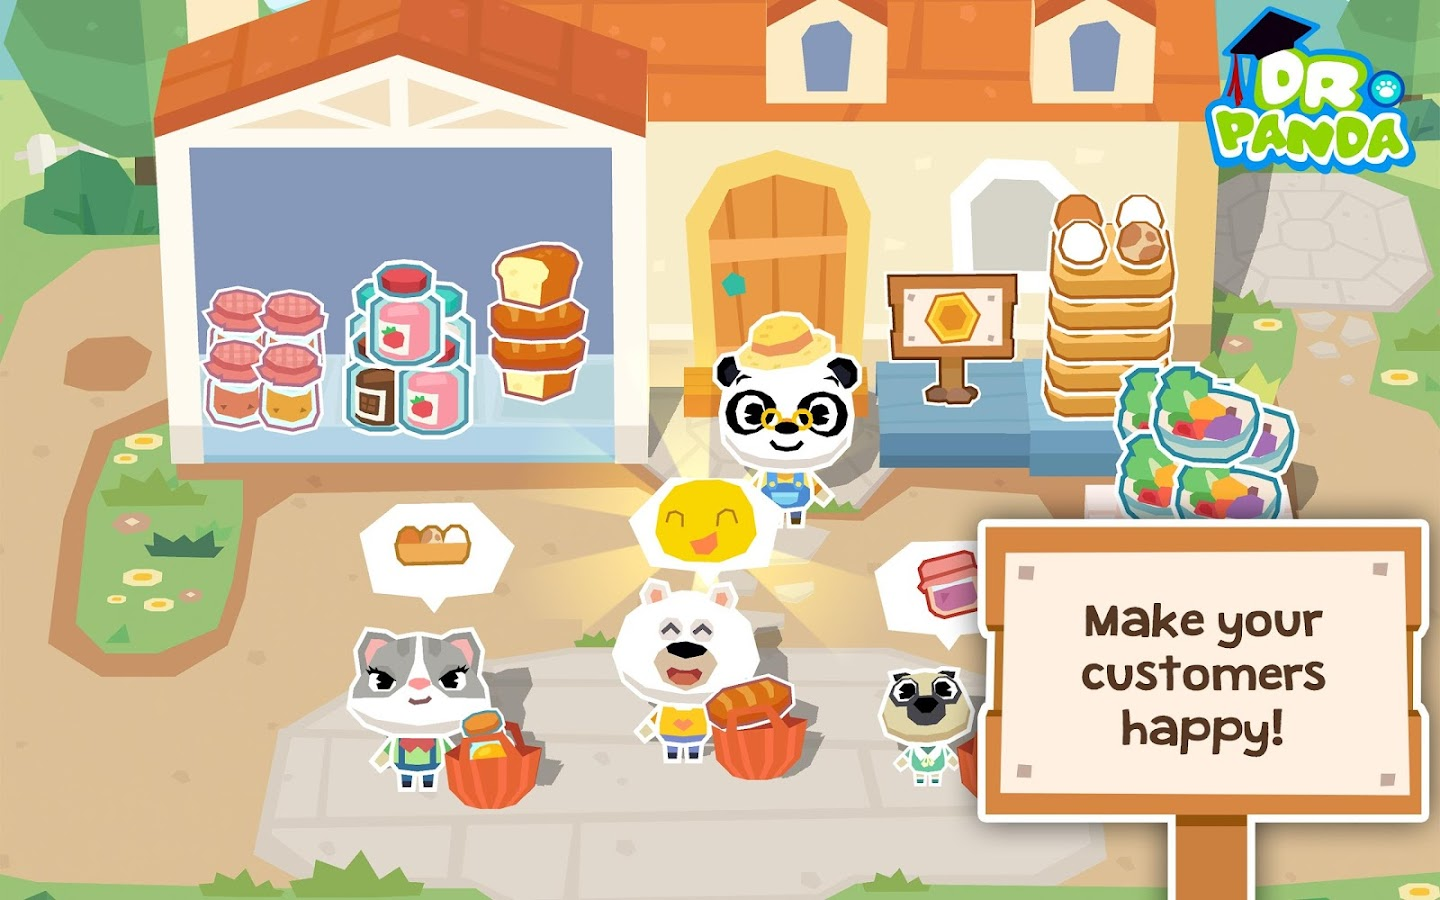 Dr. Panda Farm Screenshot 9